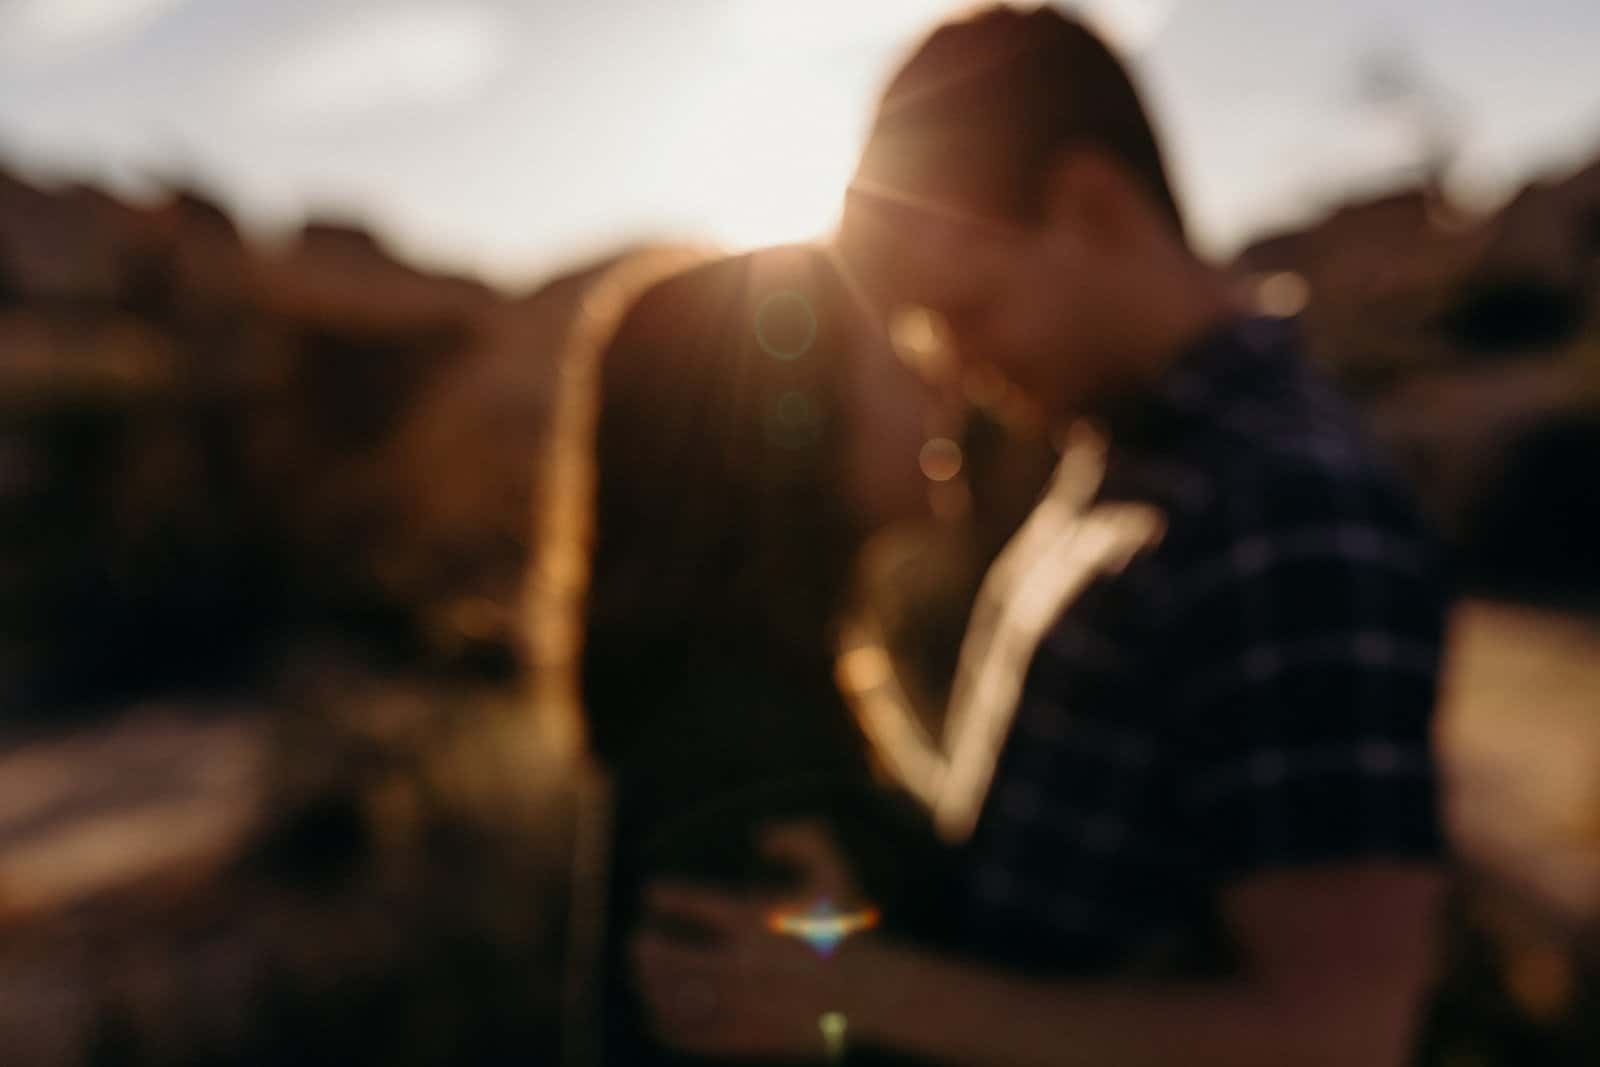 Blurred photo of couple embracing in Joshua Tree National Park